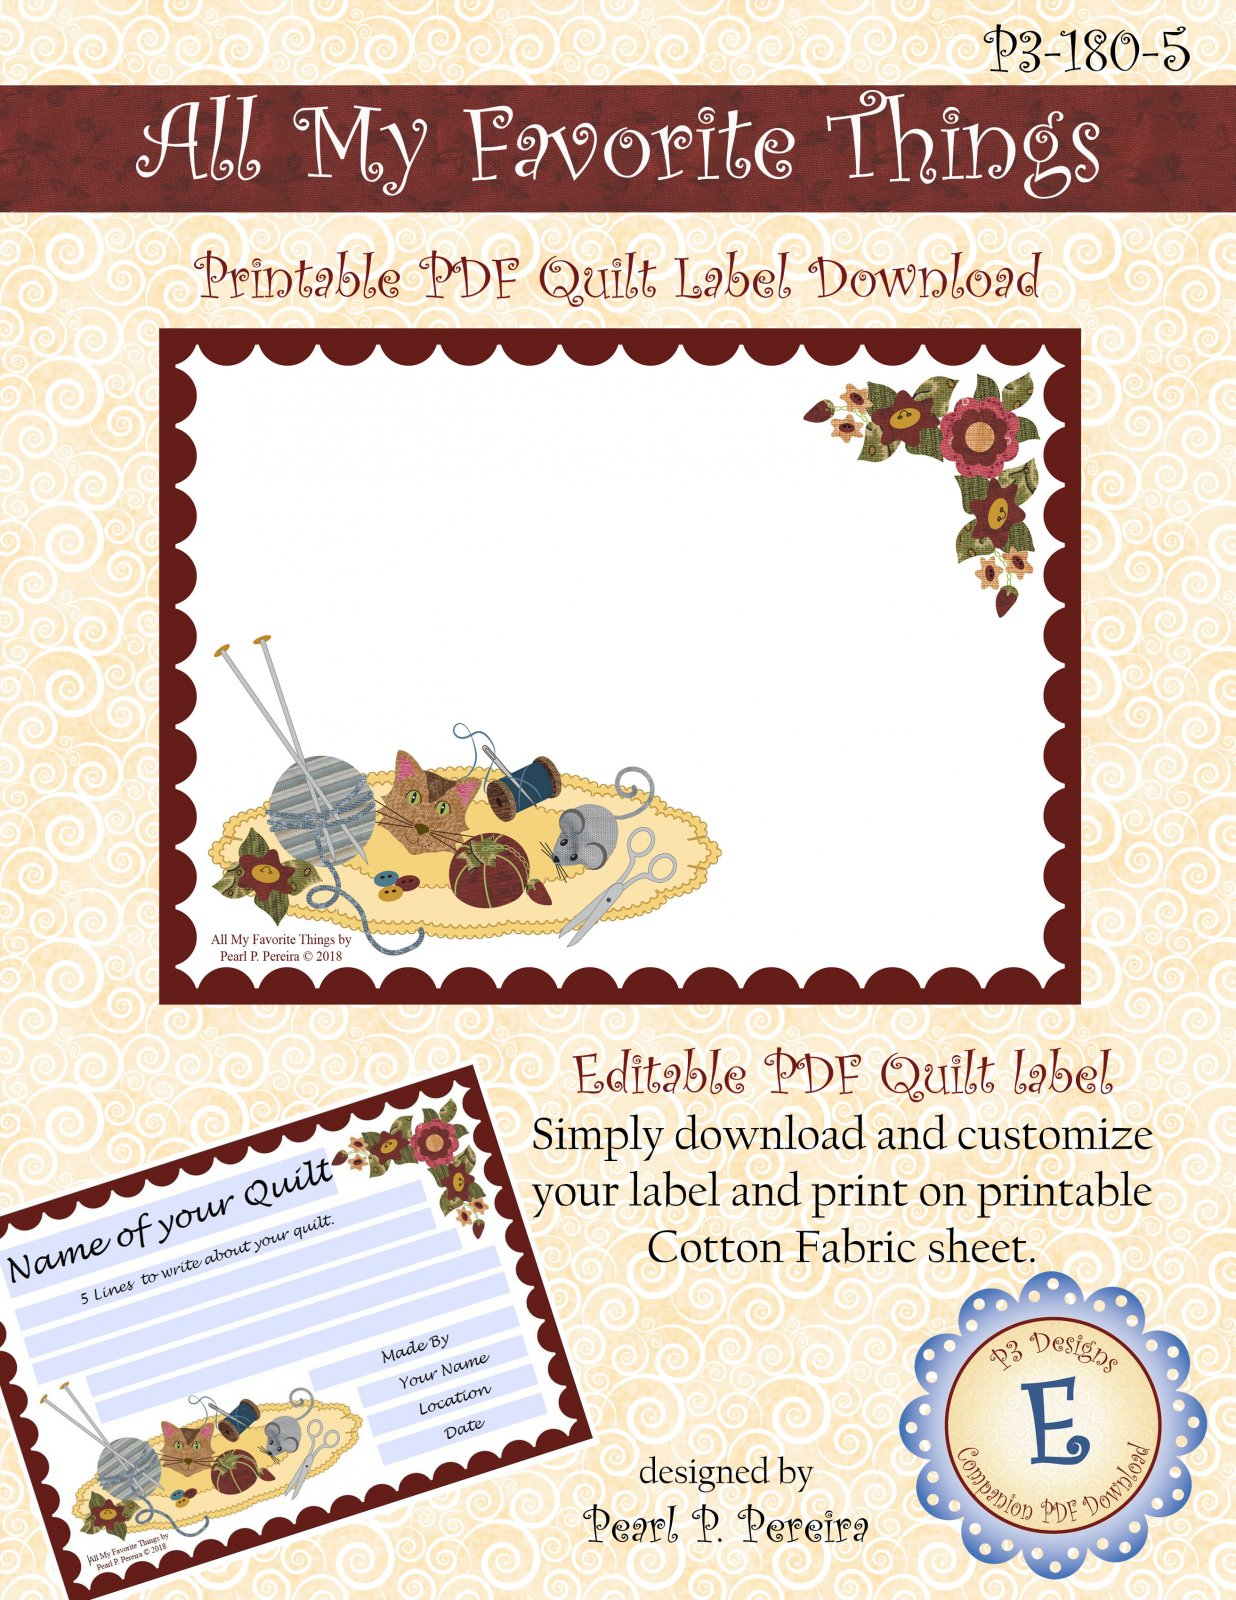 P3-180-5 All My Favorite Things - Printable Quilt Label PDF Download